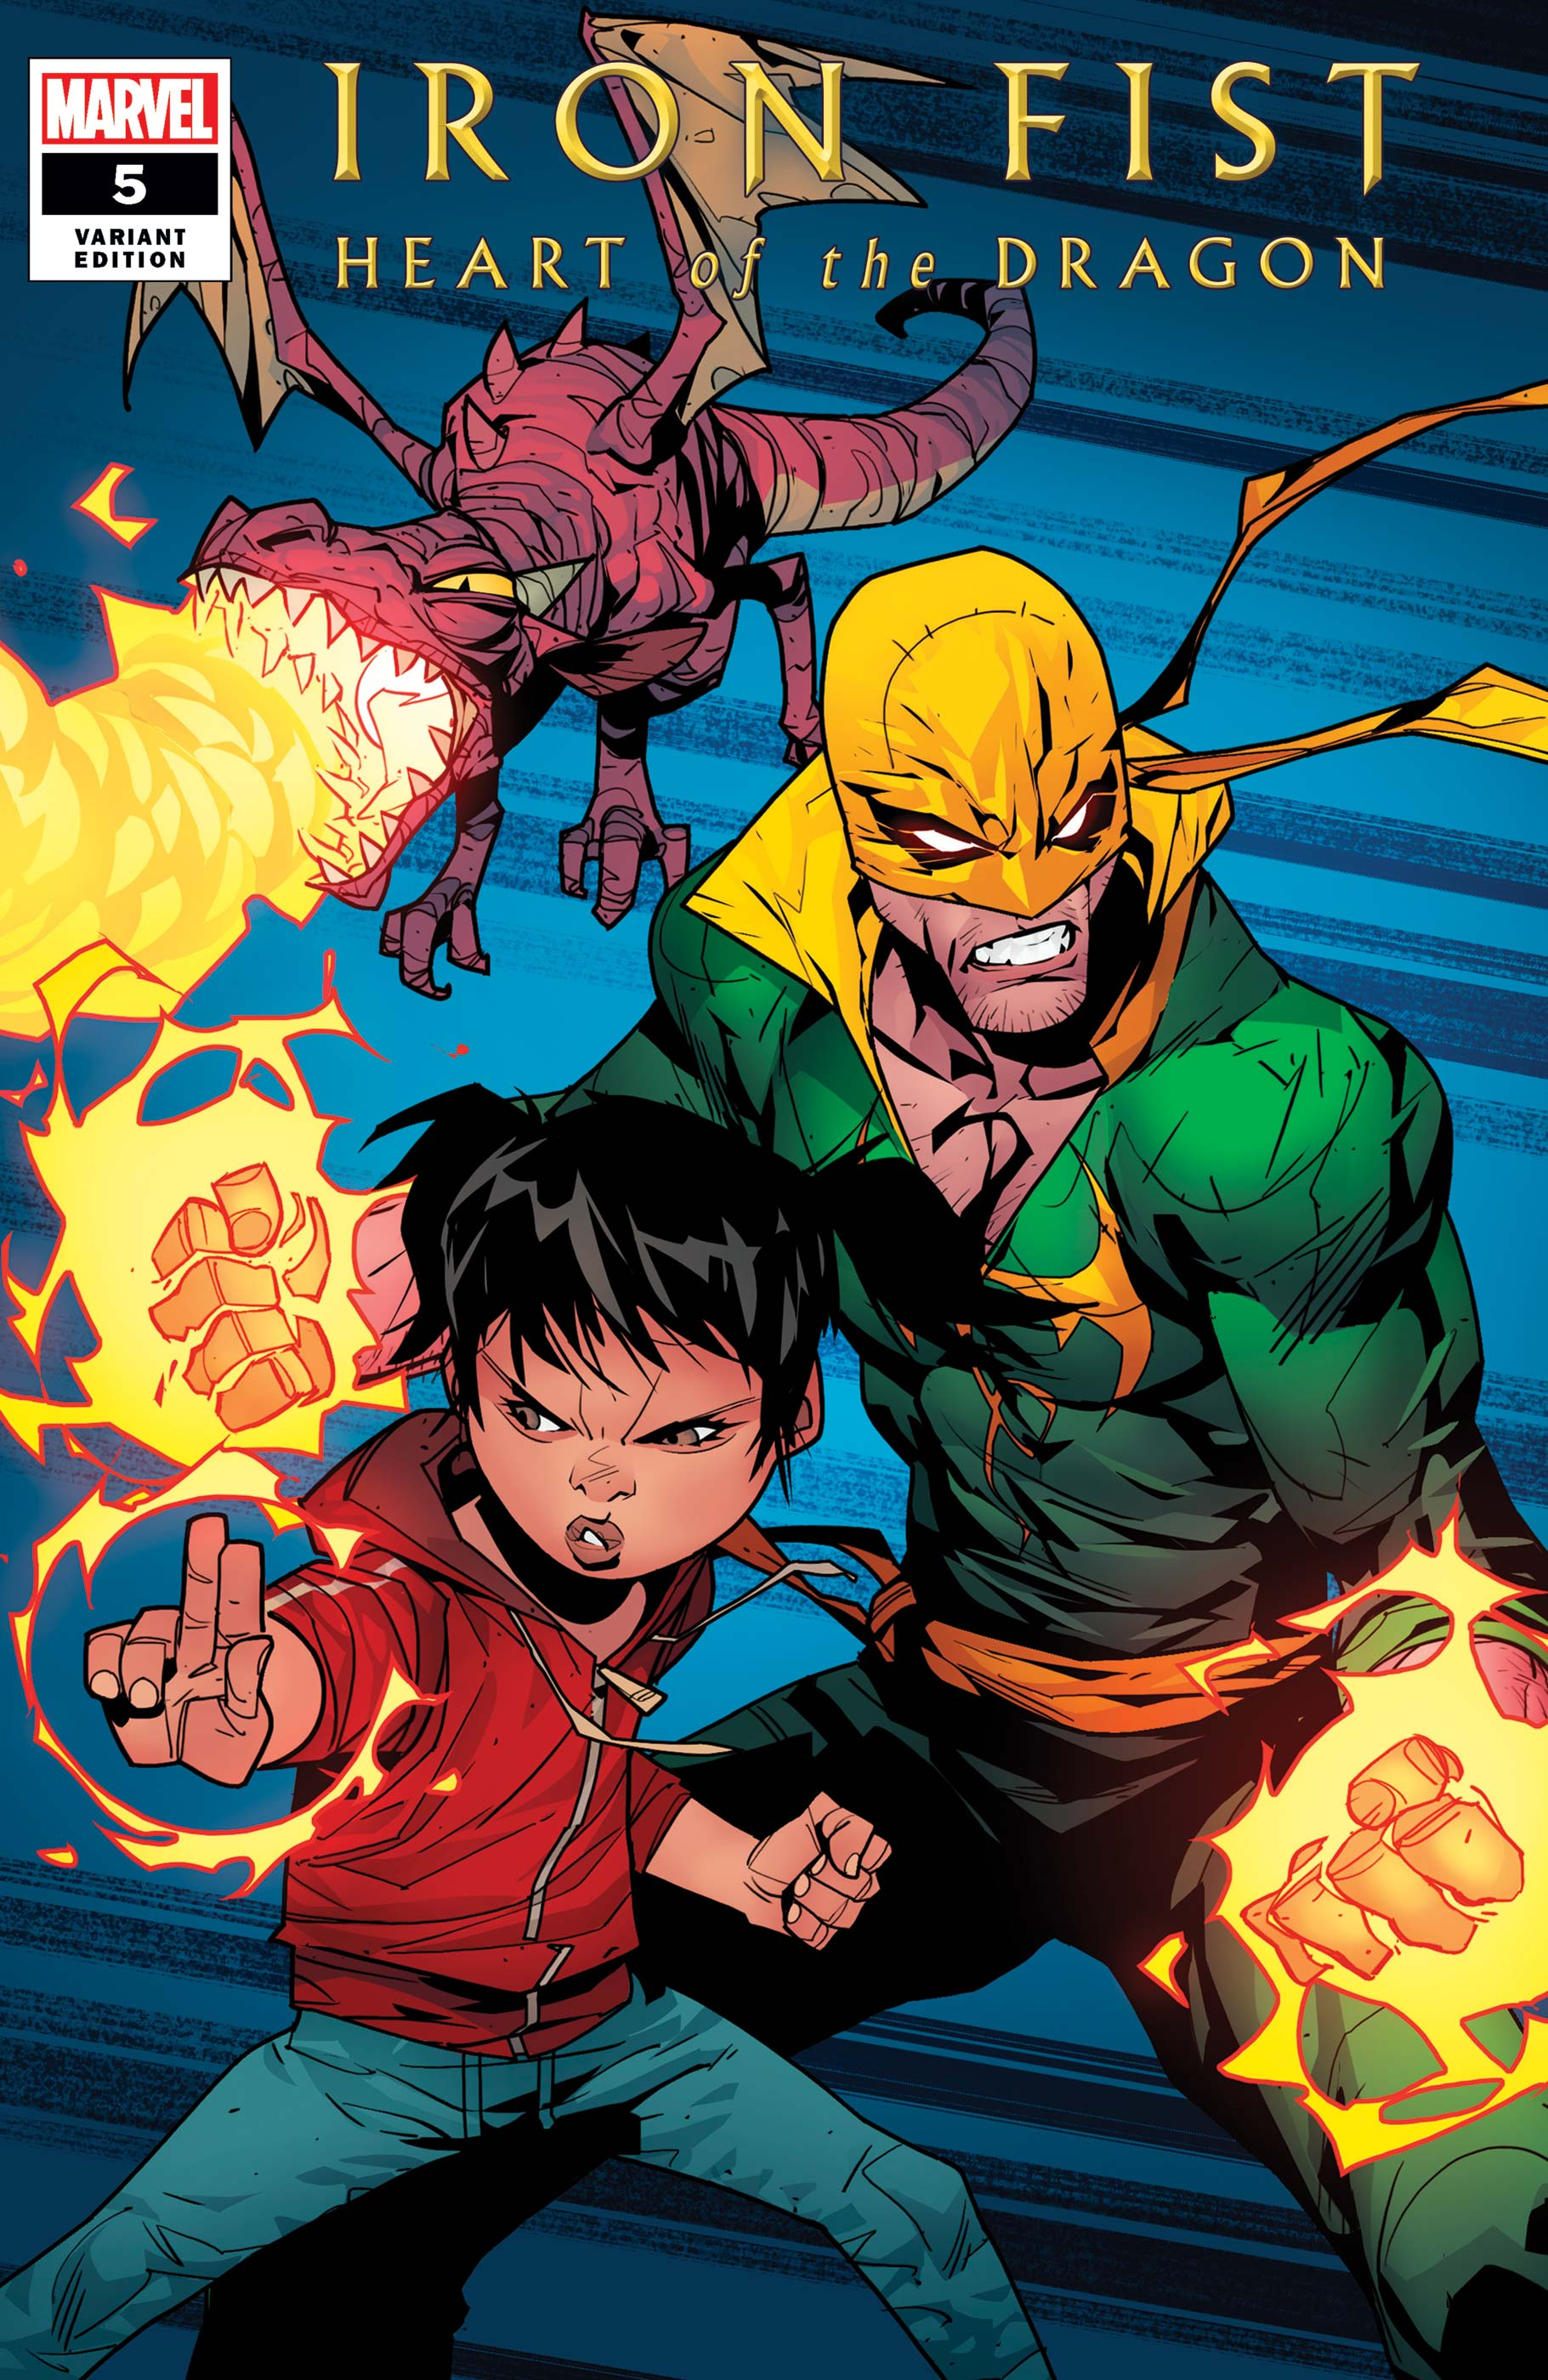 Iron Fist: Heart of the Dragon (2021) #5 (Variant)